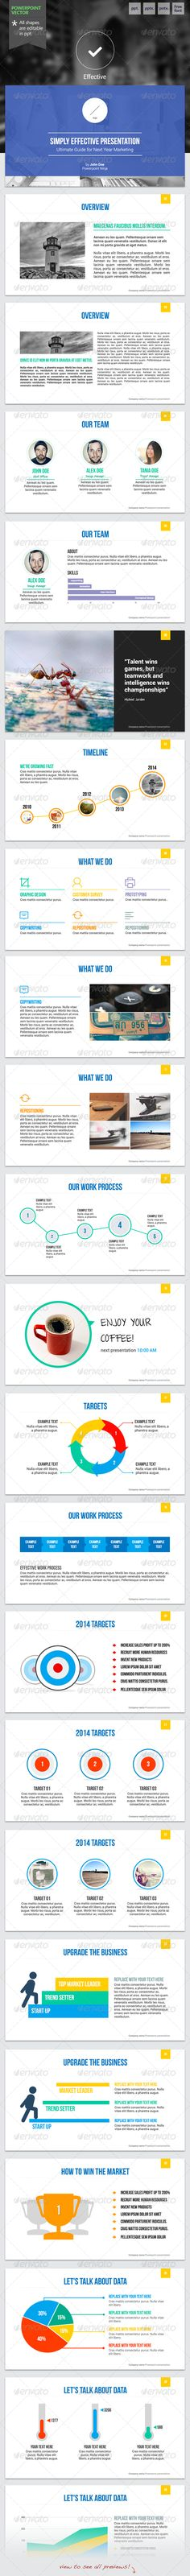 102 Best Powerpoint Templates Images On Pinterest Professional